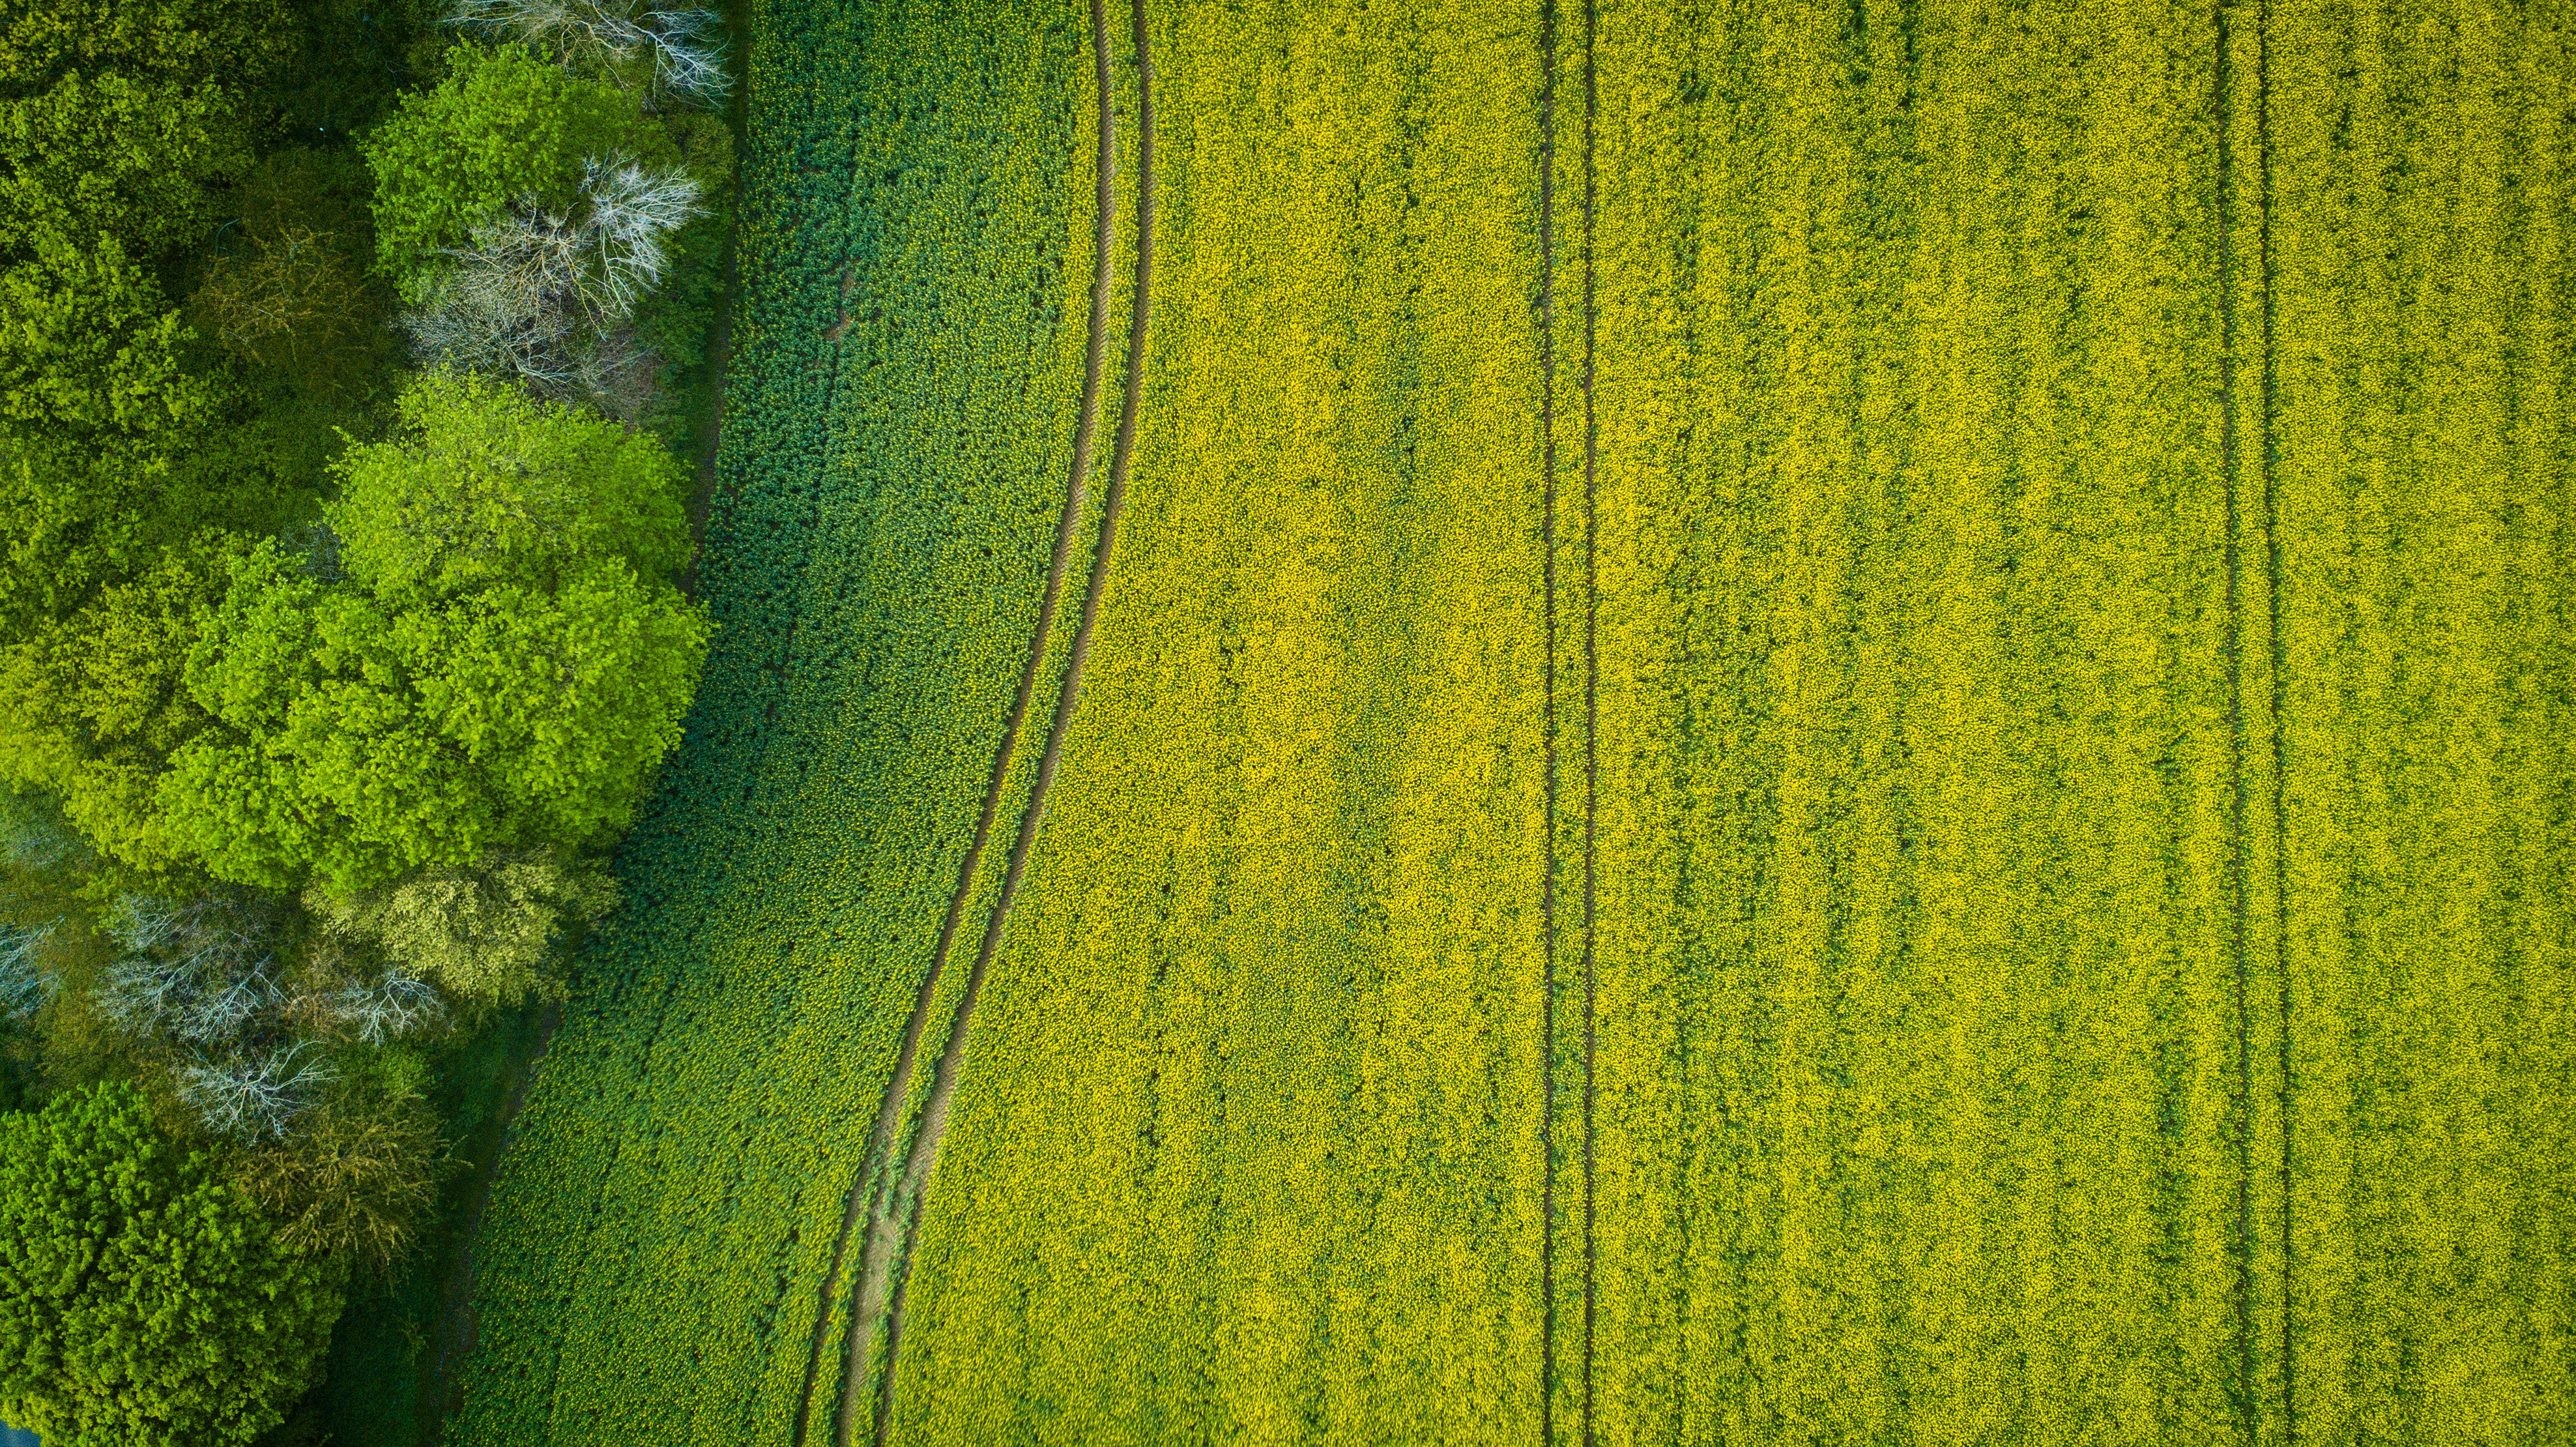 Aerial Photography of Wide Green Grass Field, Nature, Light, Green, Outdoors, HQ Photo